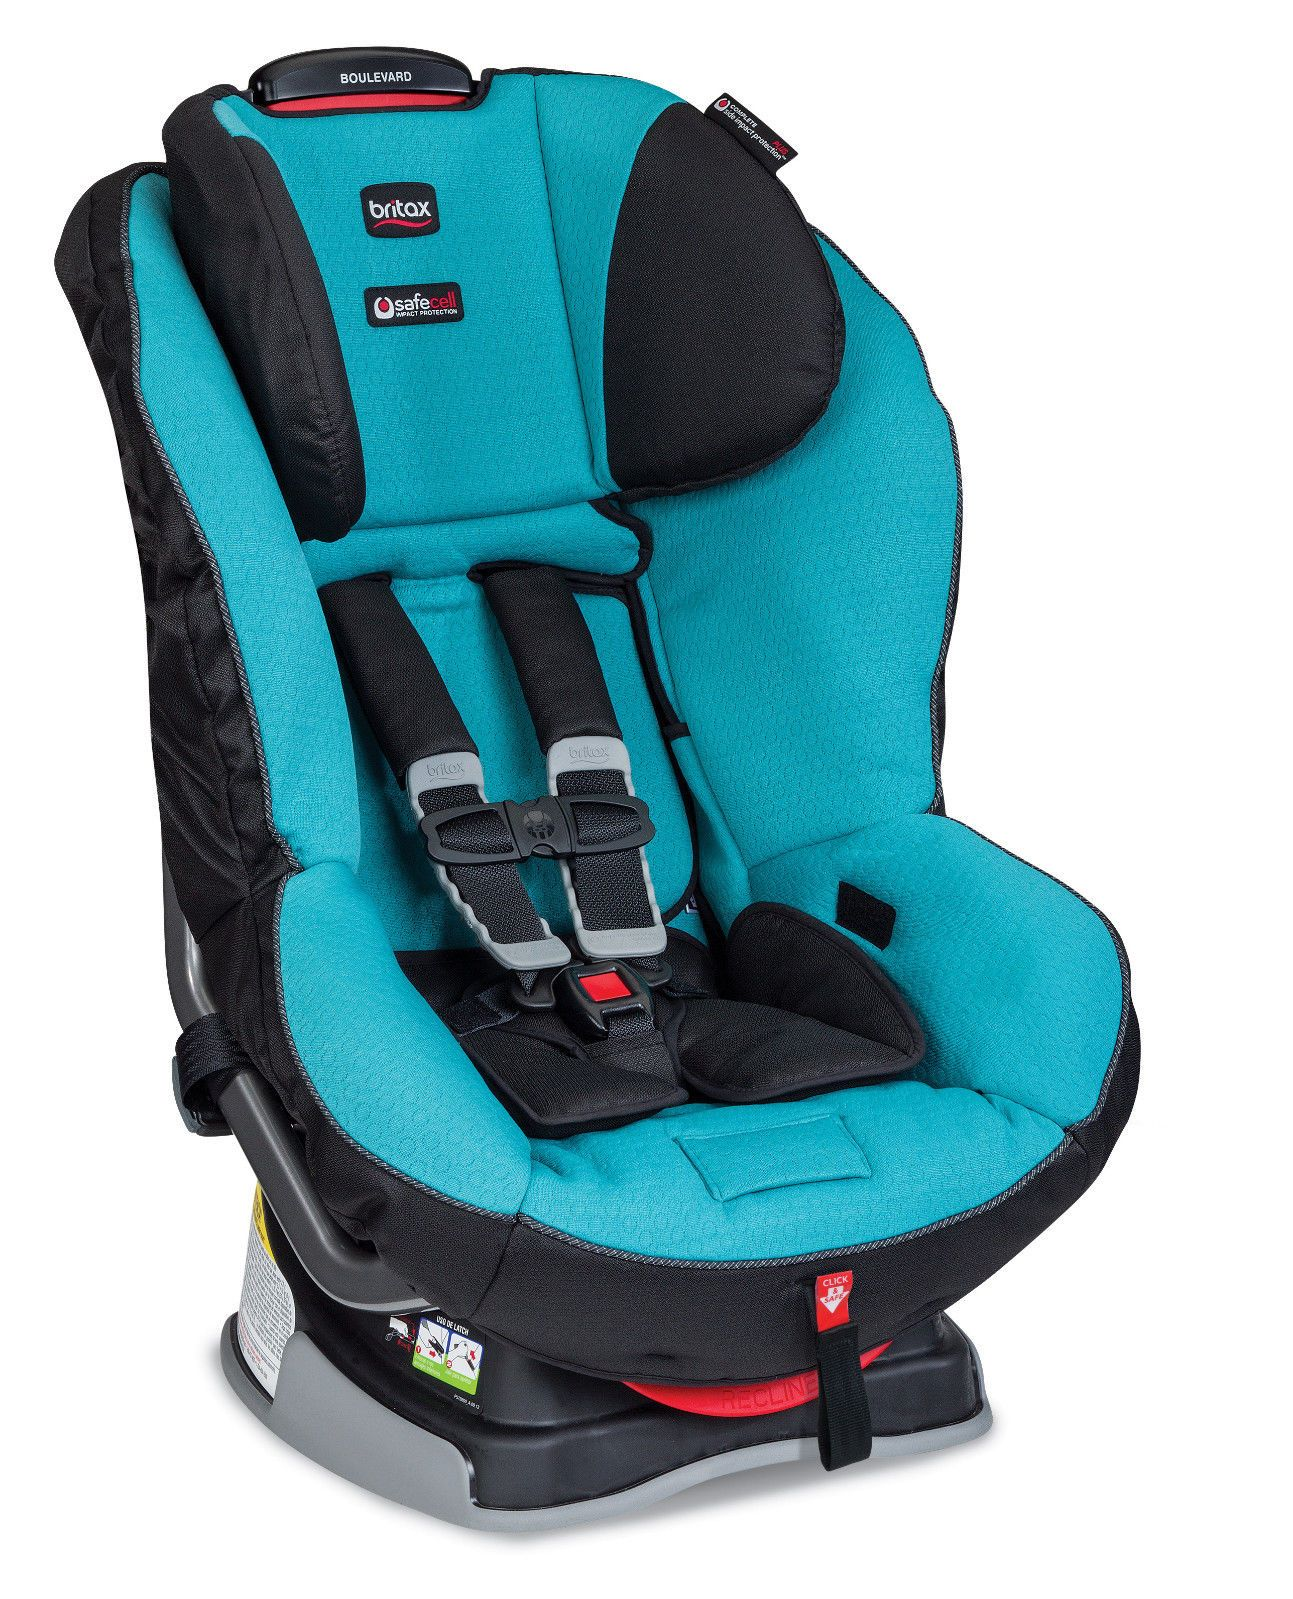 Britax 2014/2015 Boulevard G4.1 Convertible Car Seat in